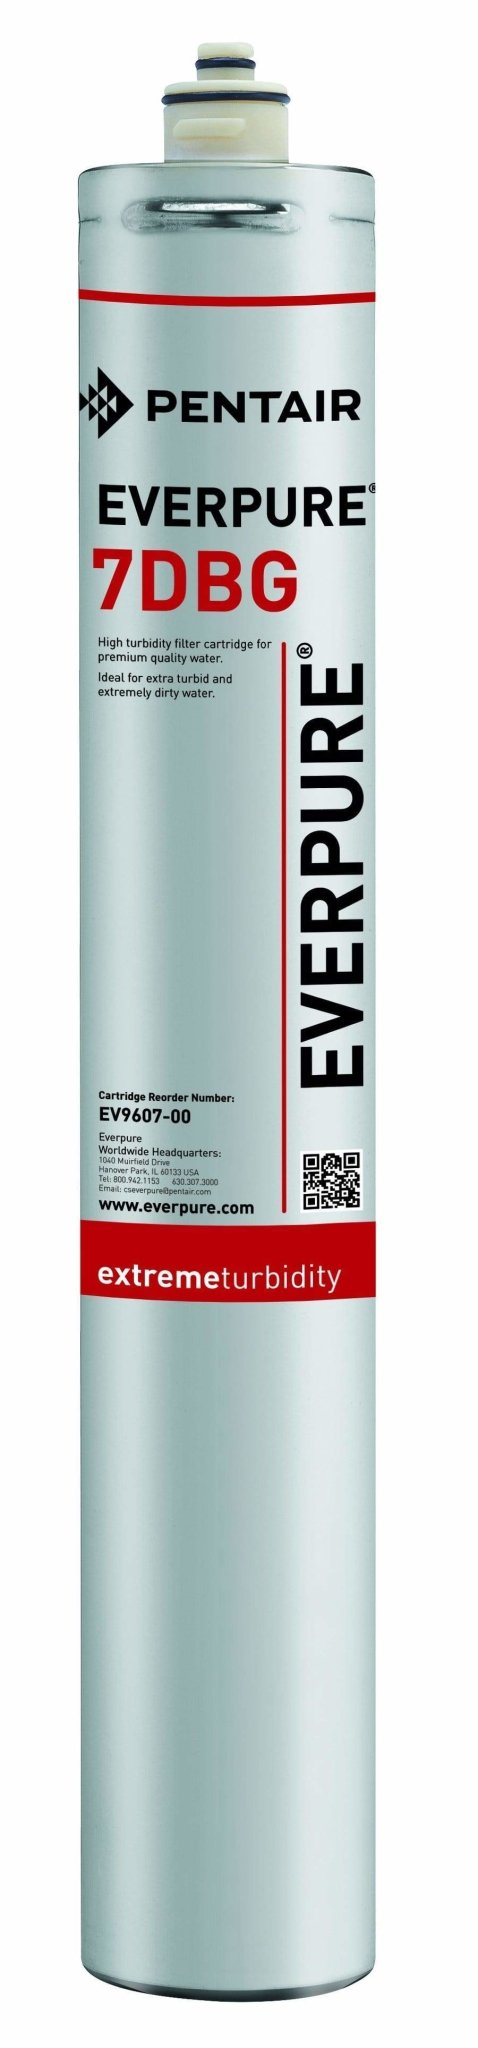 Everpure 7DBG Cartridge EV9607-00 - Efilters.net